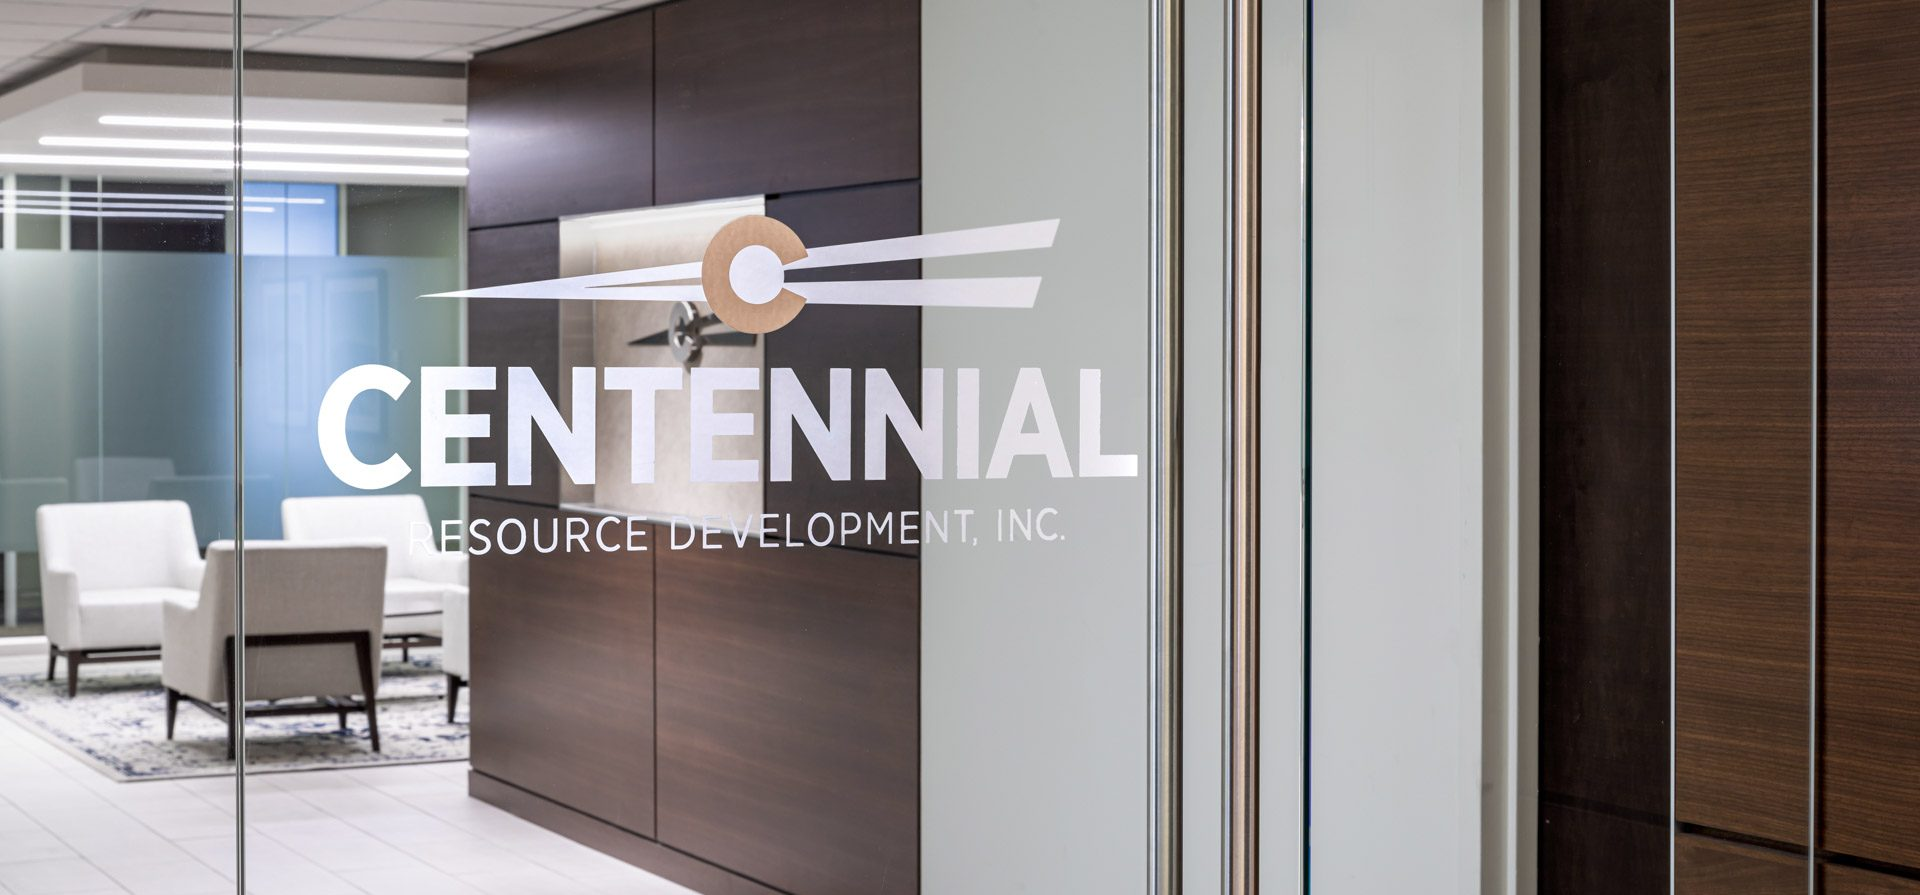 Centennial Resource Development